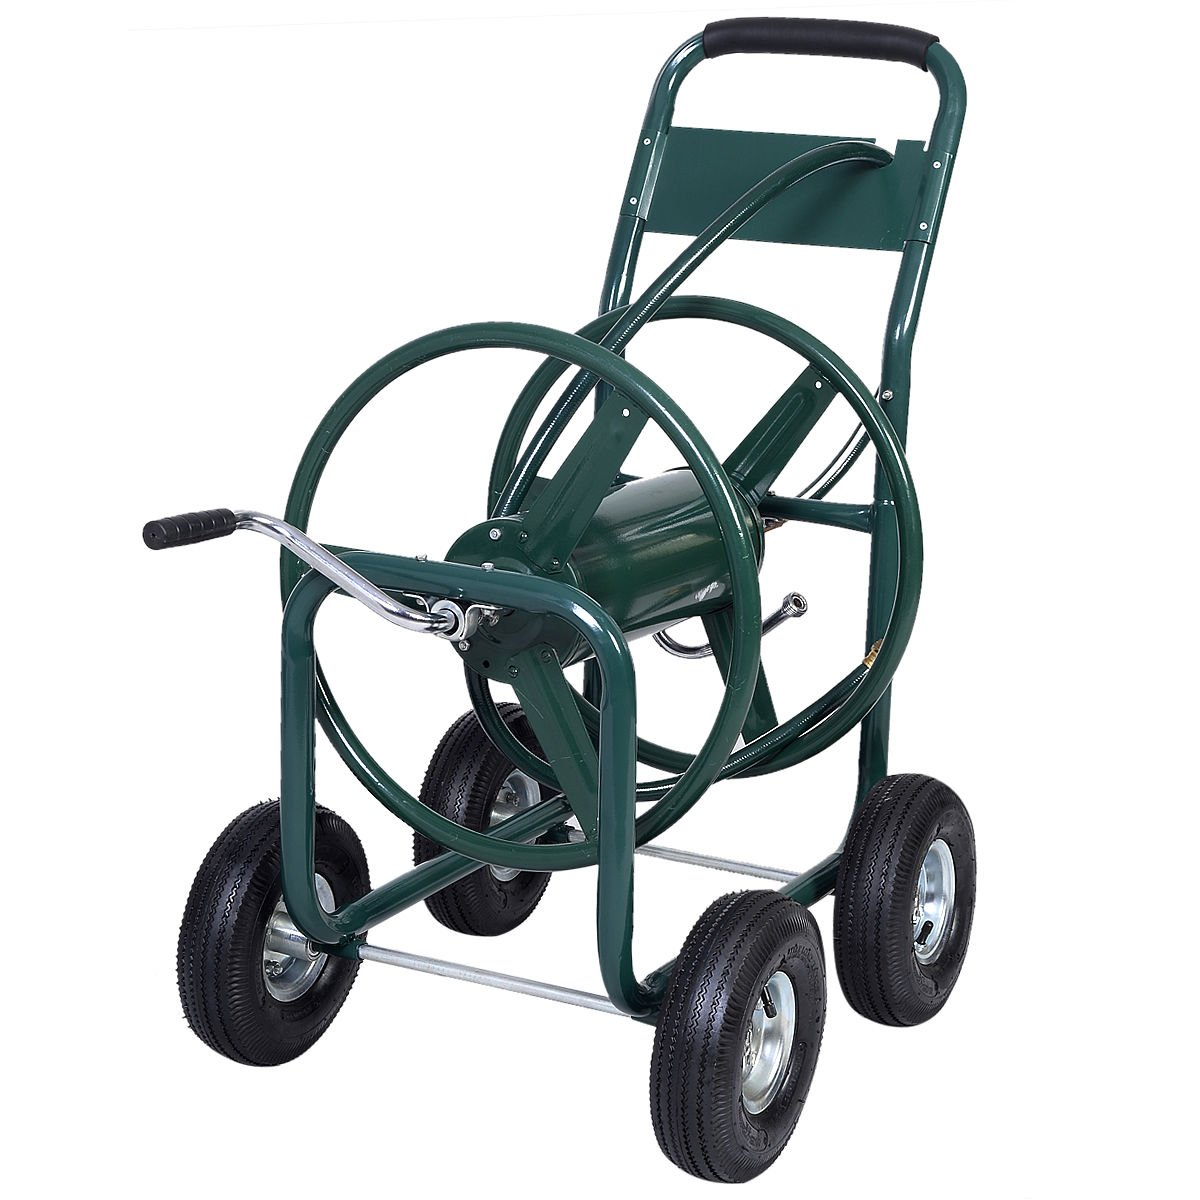 Generic QY*US4*160215*2785 *8**1237** Cart 300FT Water Hose Reel Garden Garden Water el Cart Yard Water Planting New ing New Outdoor Heavy Duty ater Planting New